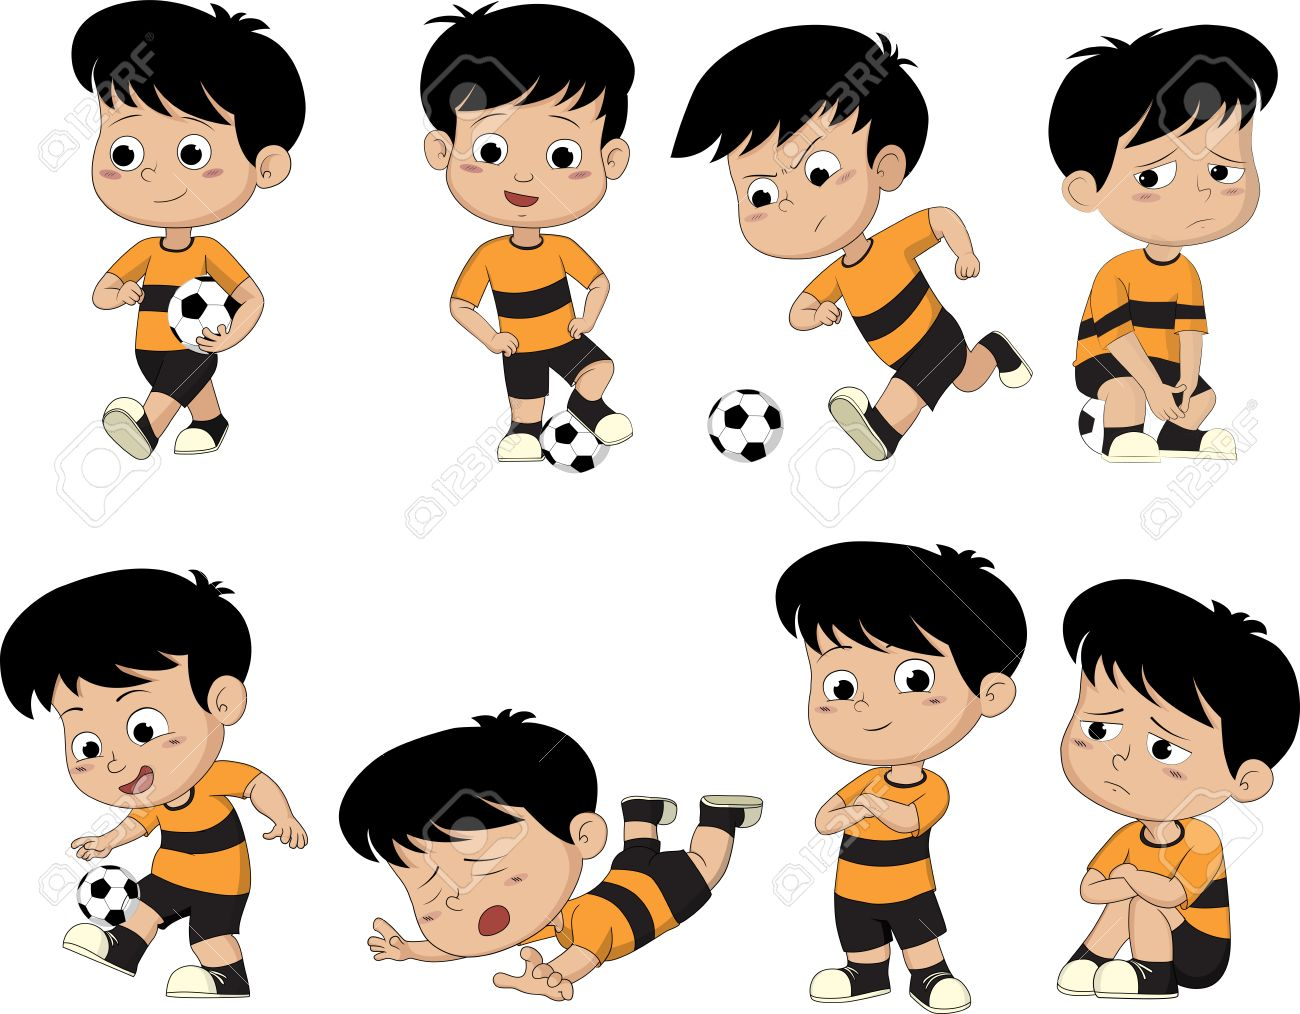 Cartoon soccer kid with different pose. - 53879338